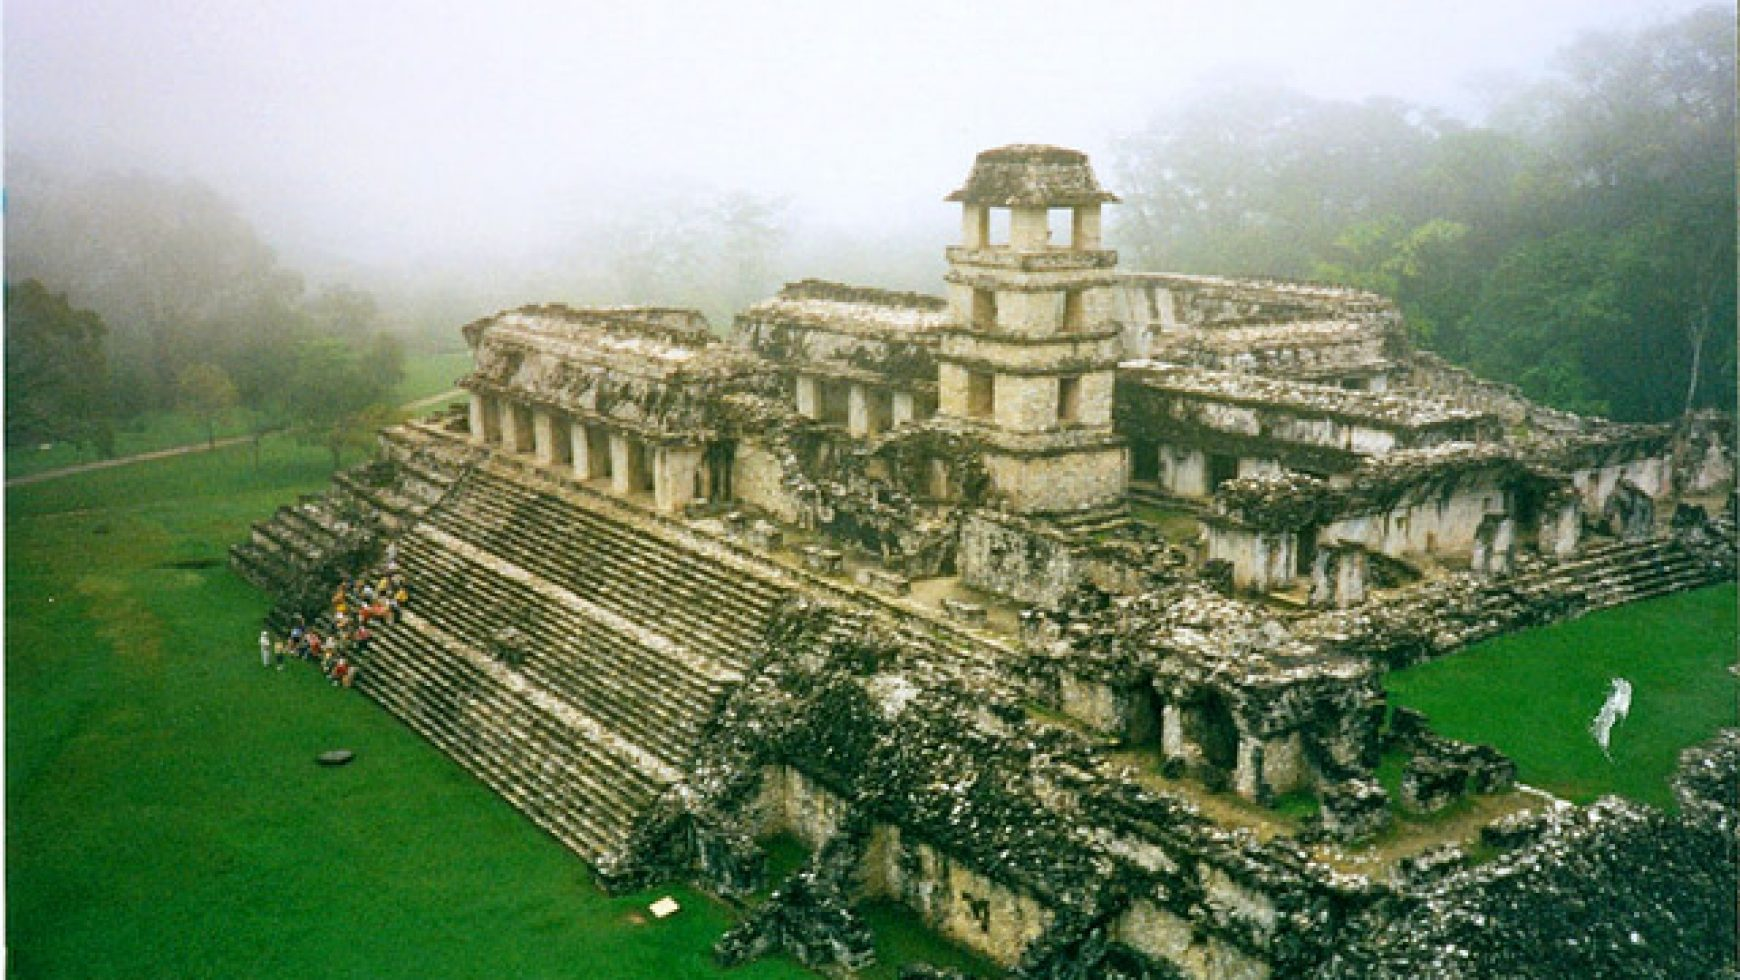 Aardeheling Palenque, Mexico